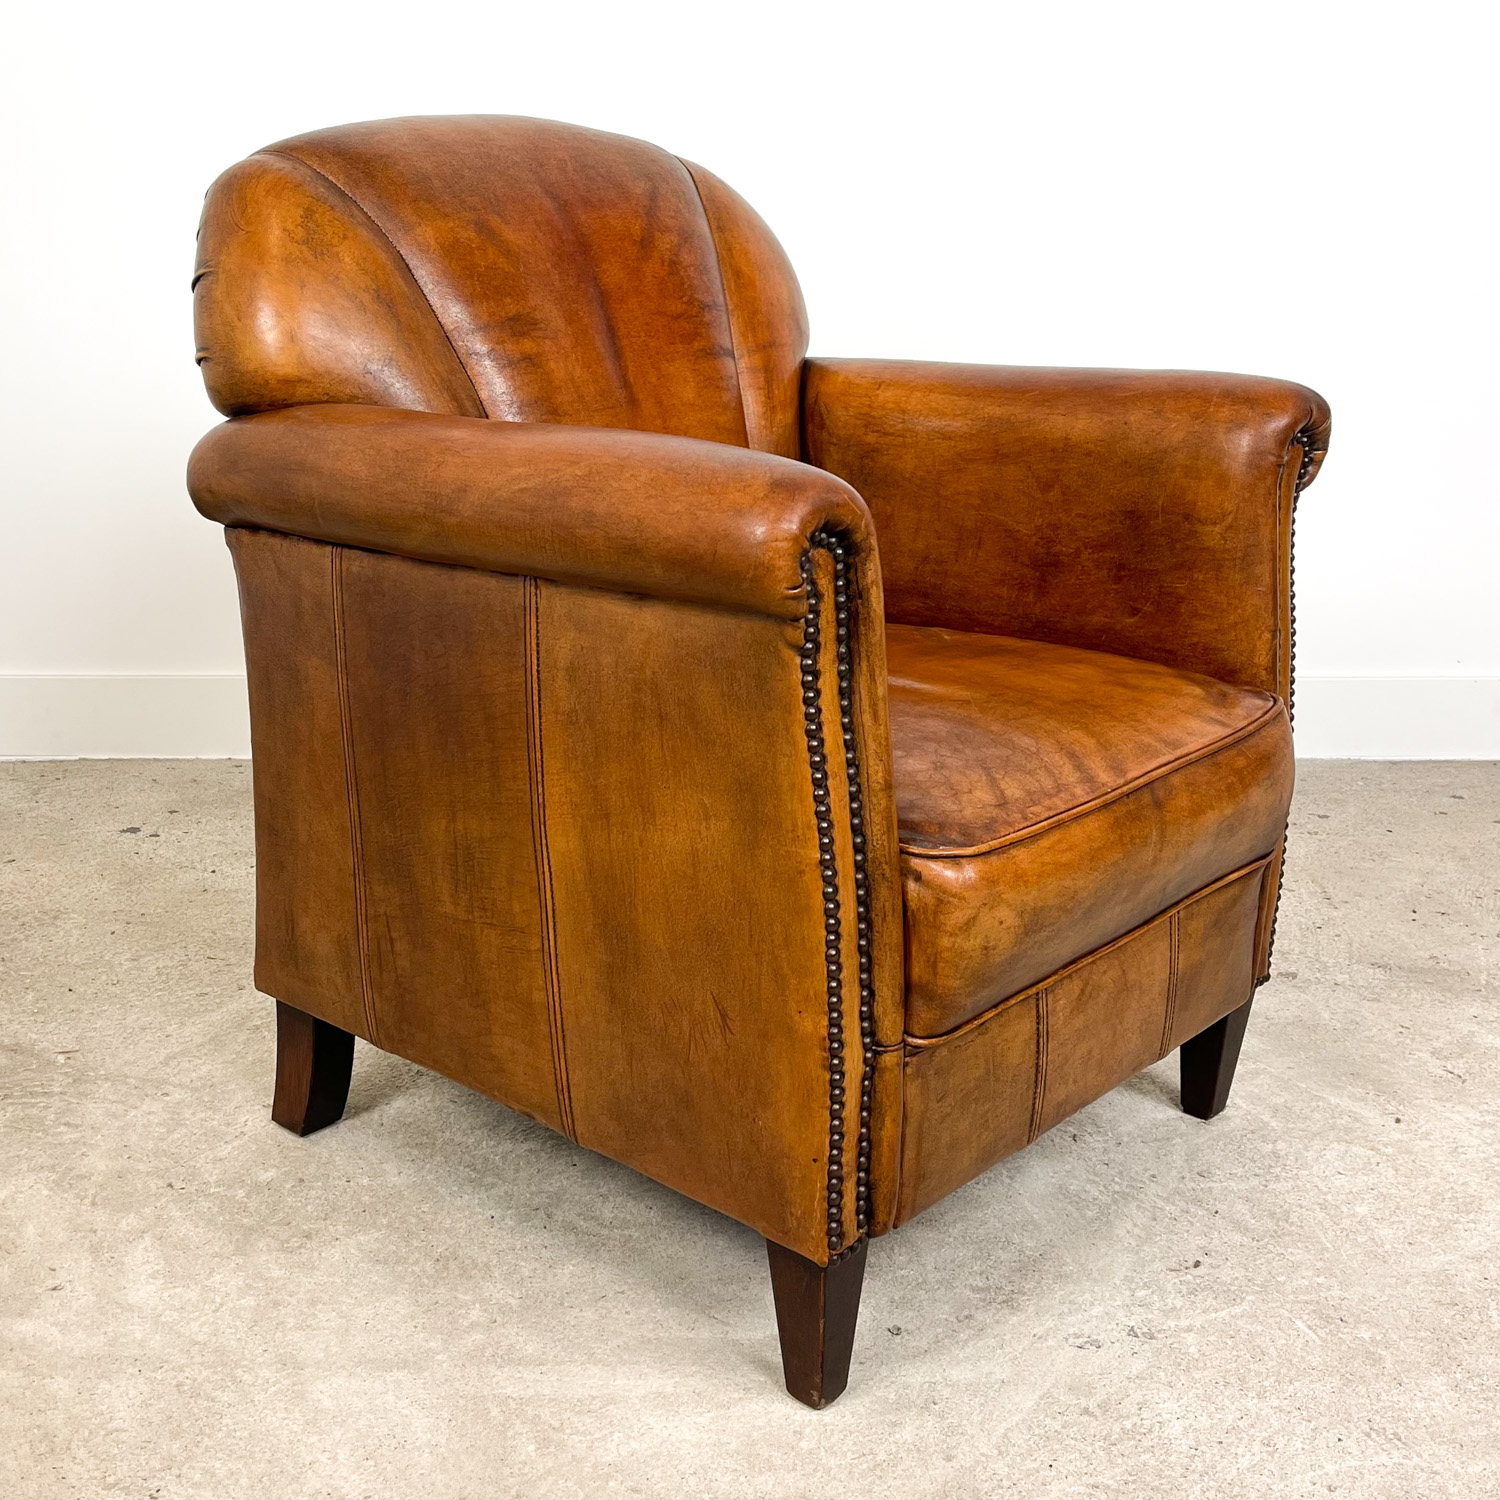 vintage cognac colored art deco style arm chair